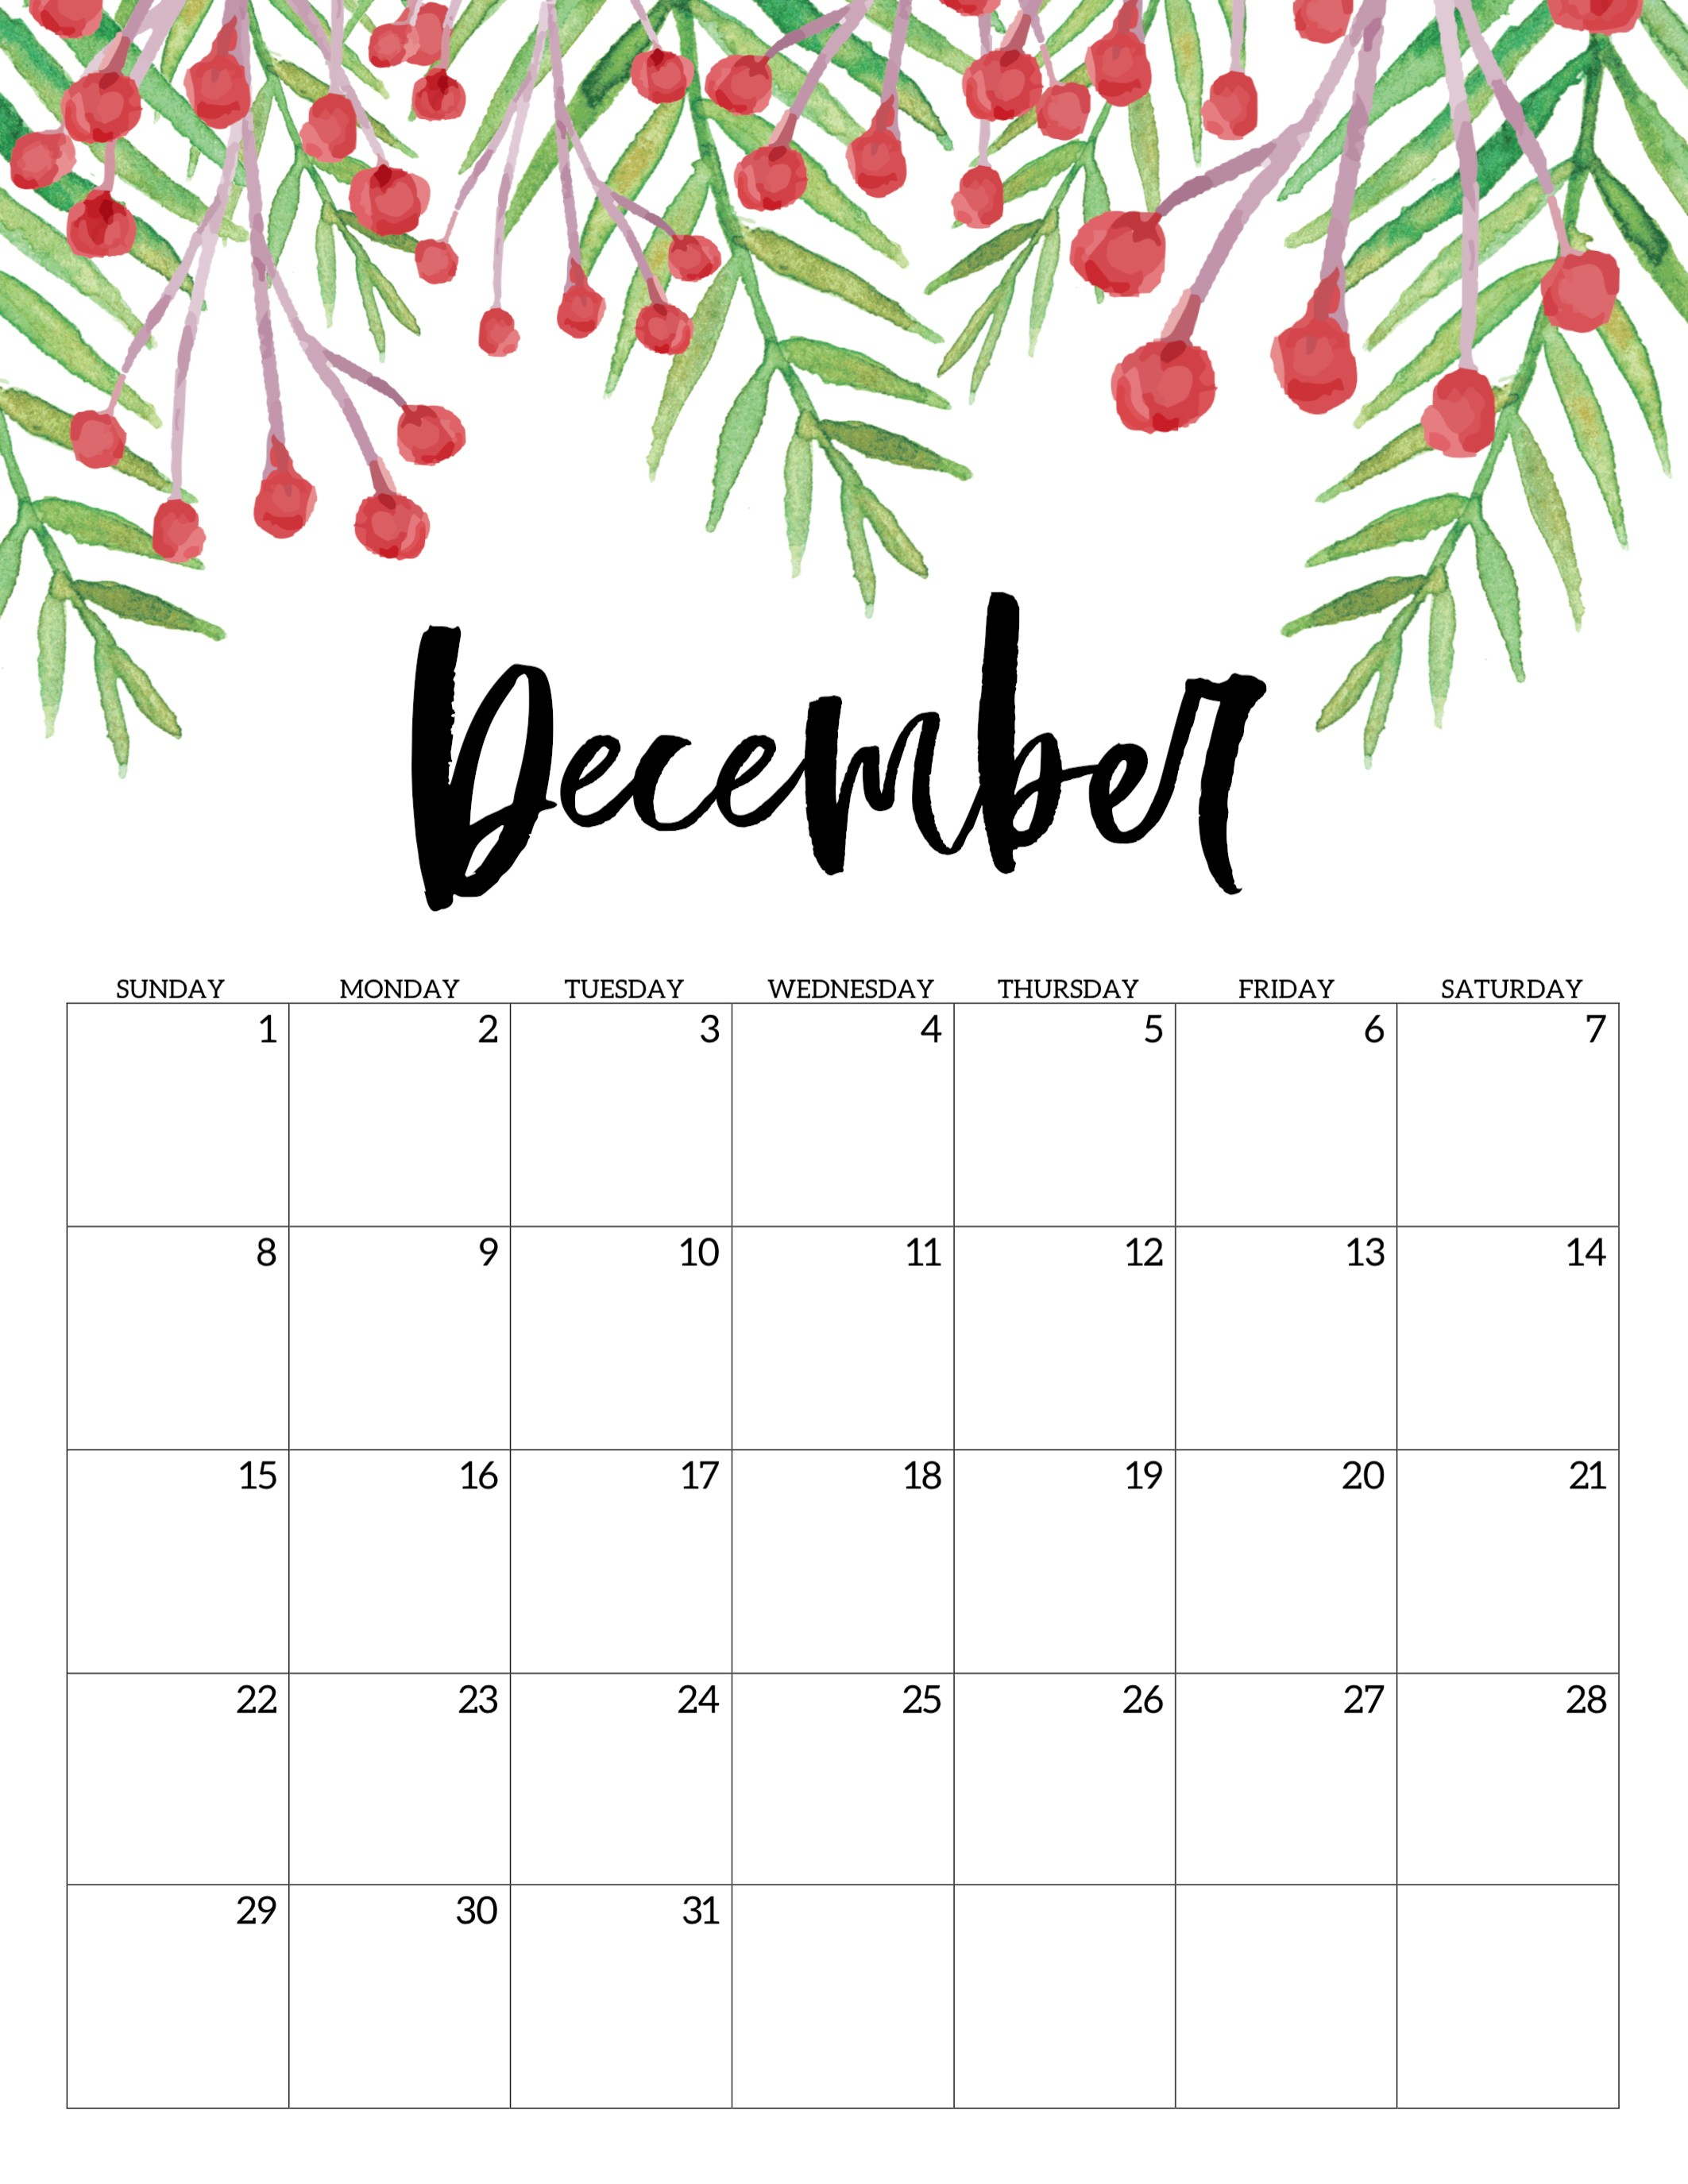 Free Printable Calendar 2019 - Floral - Paper Trail Design pertaining to 2019 2020 Girly Calendar Printable